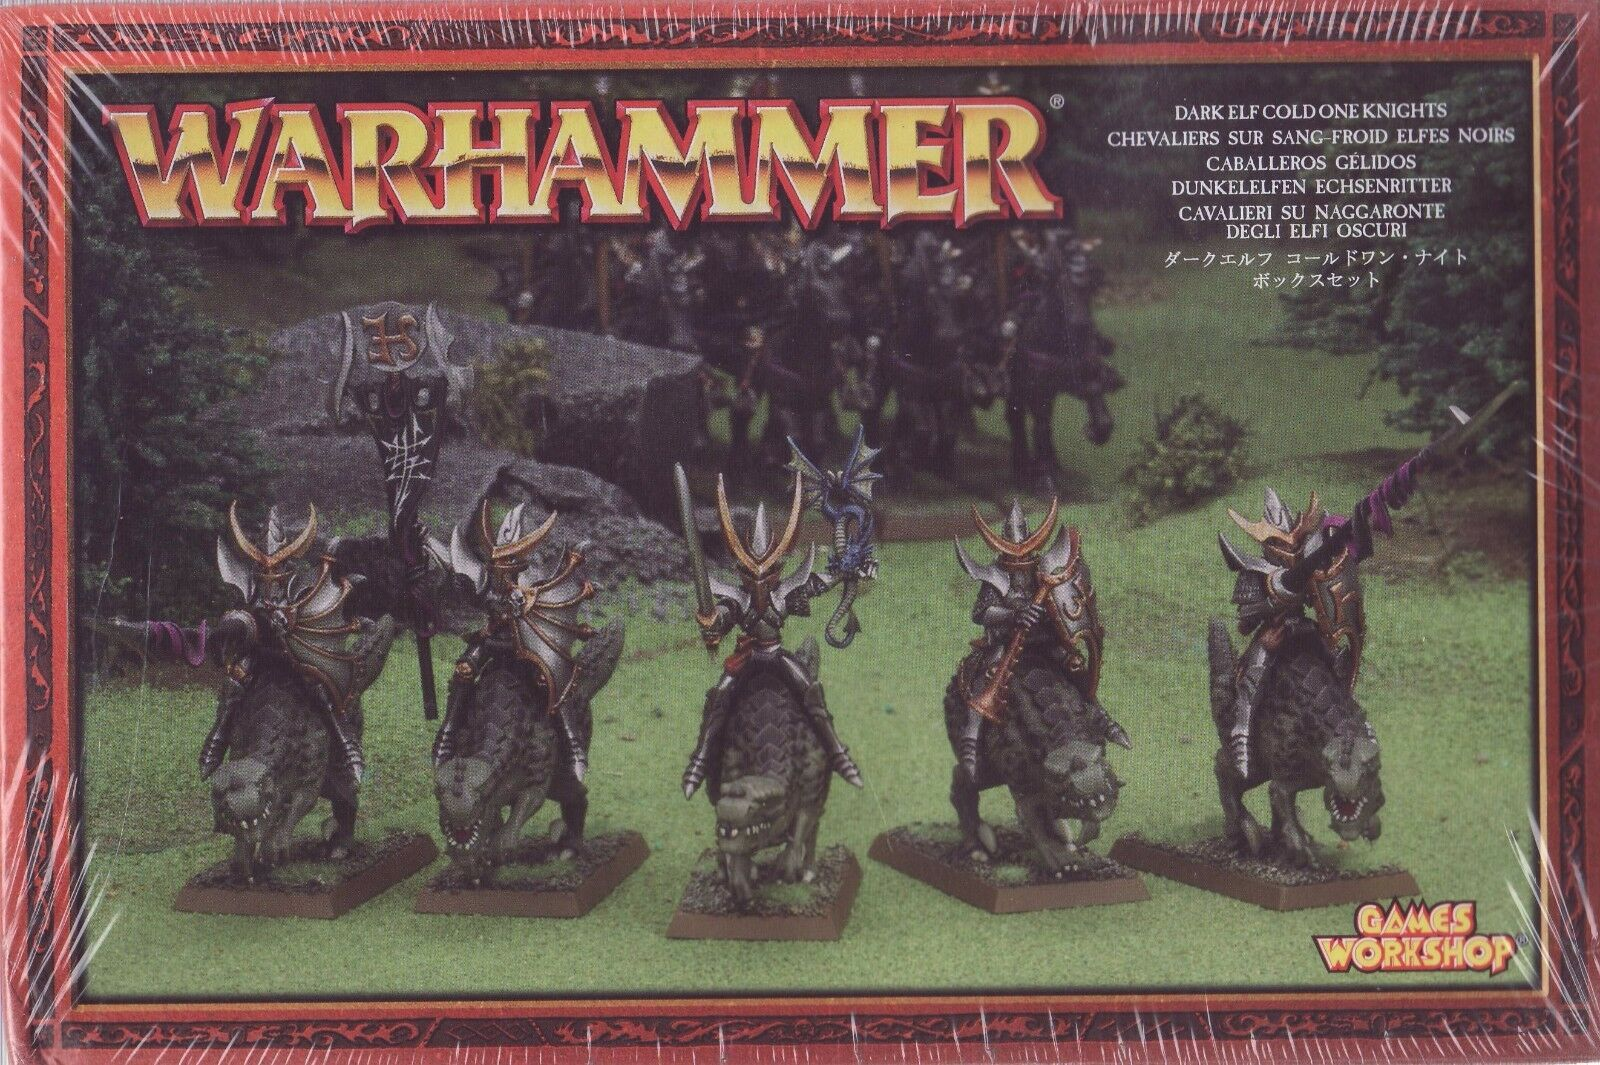 Warhammer Dark Elf Cold One Knights - 85-08 - FACTORY SEALED Games Workshop OOP